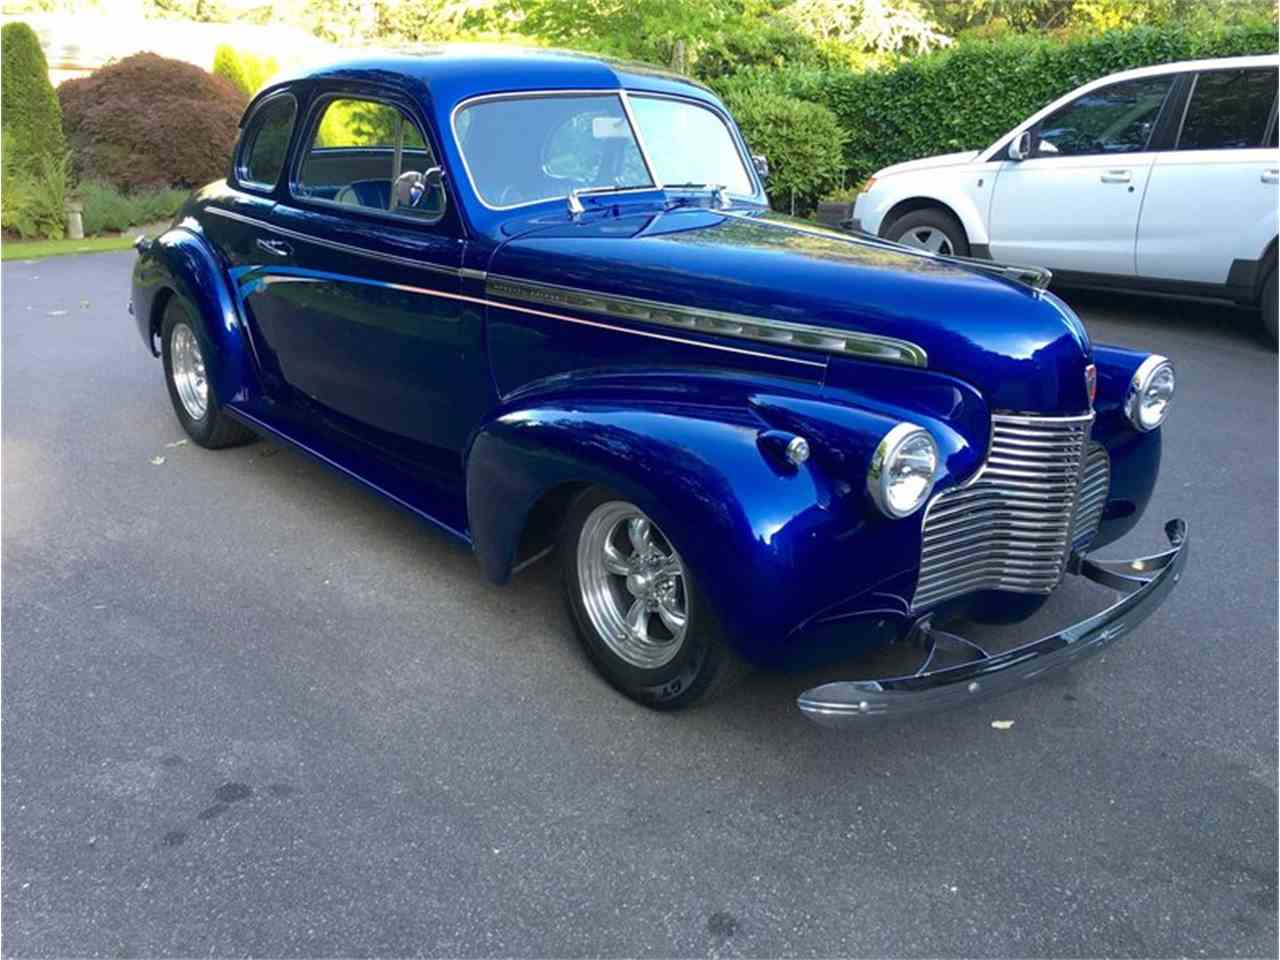 Large Picture of 1940 Chevrolet Street Rod located in Washington - $29,995.00 - M743